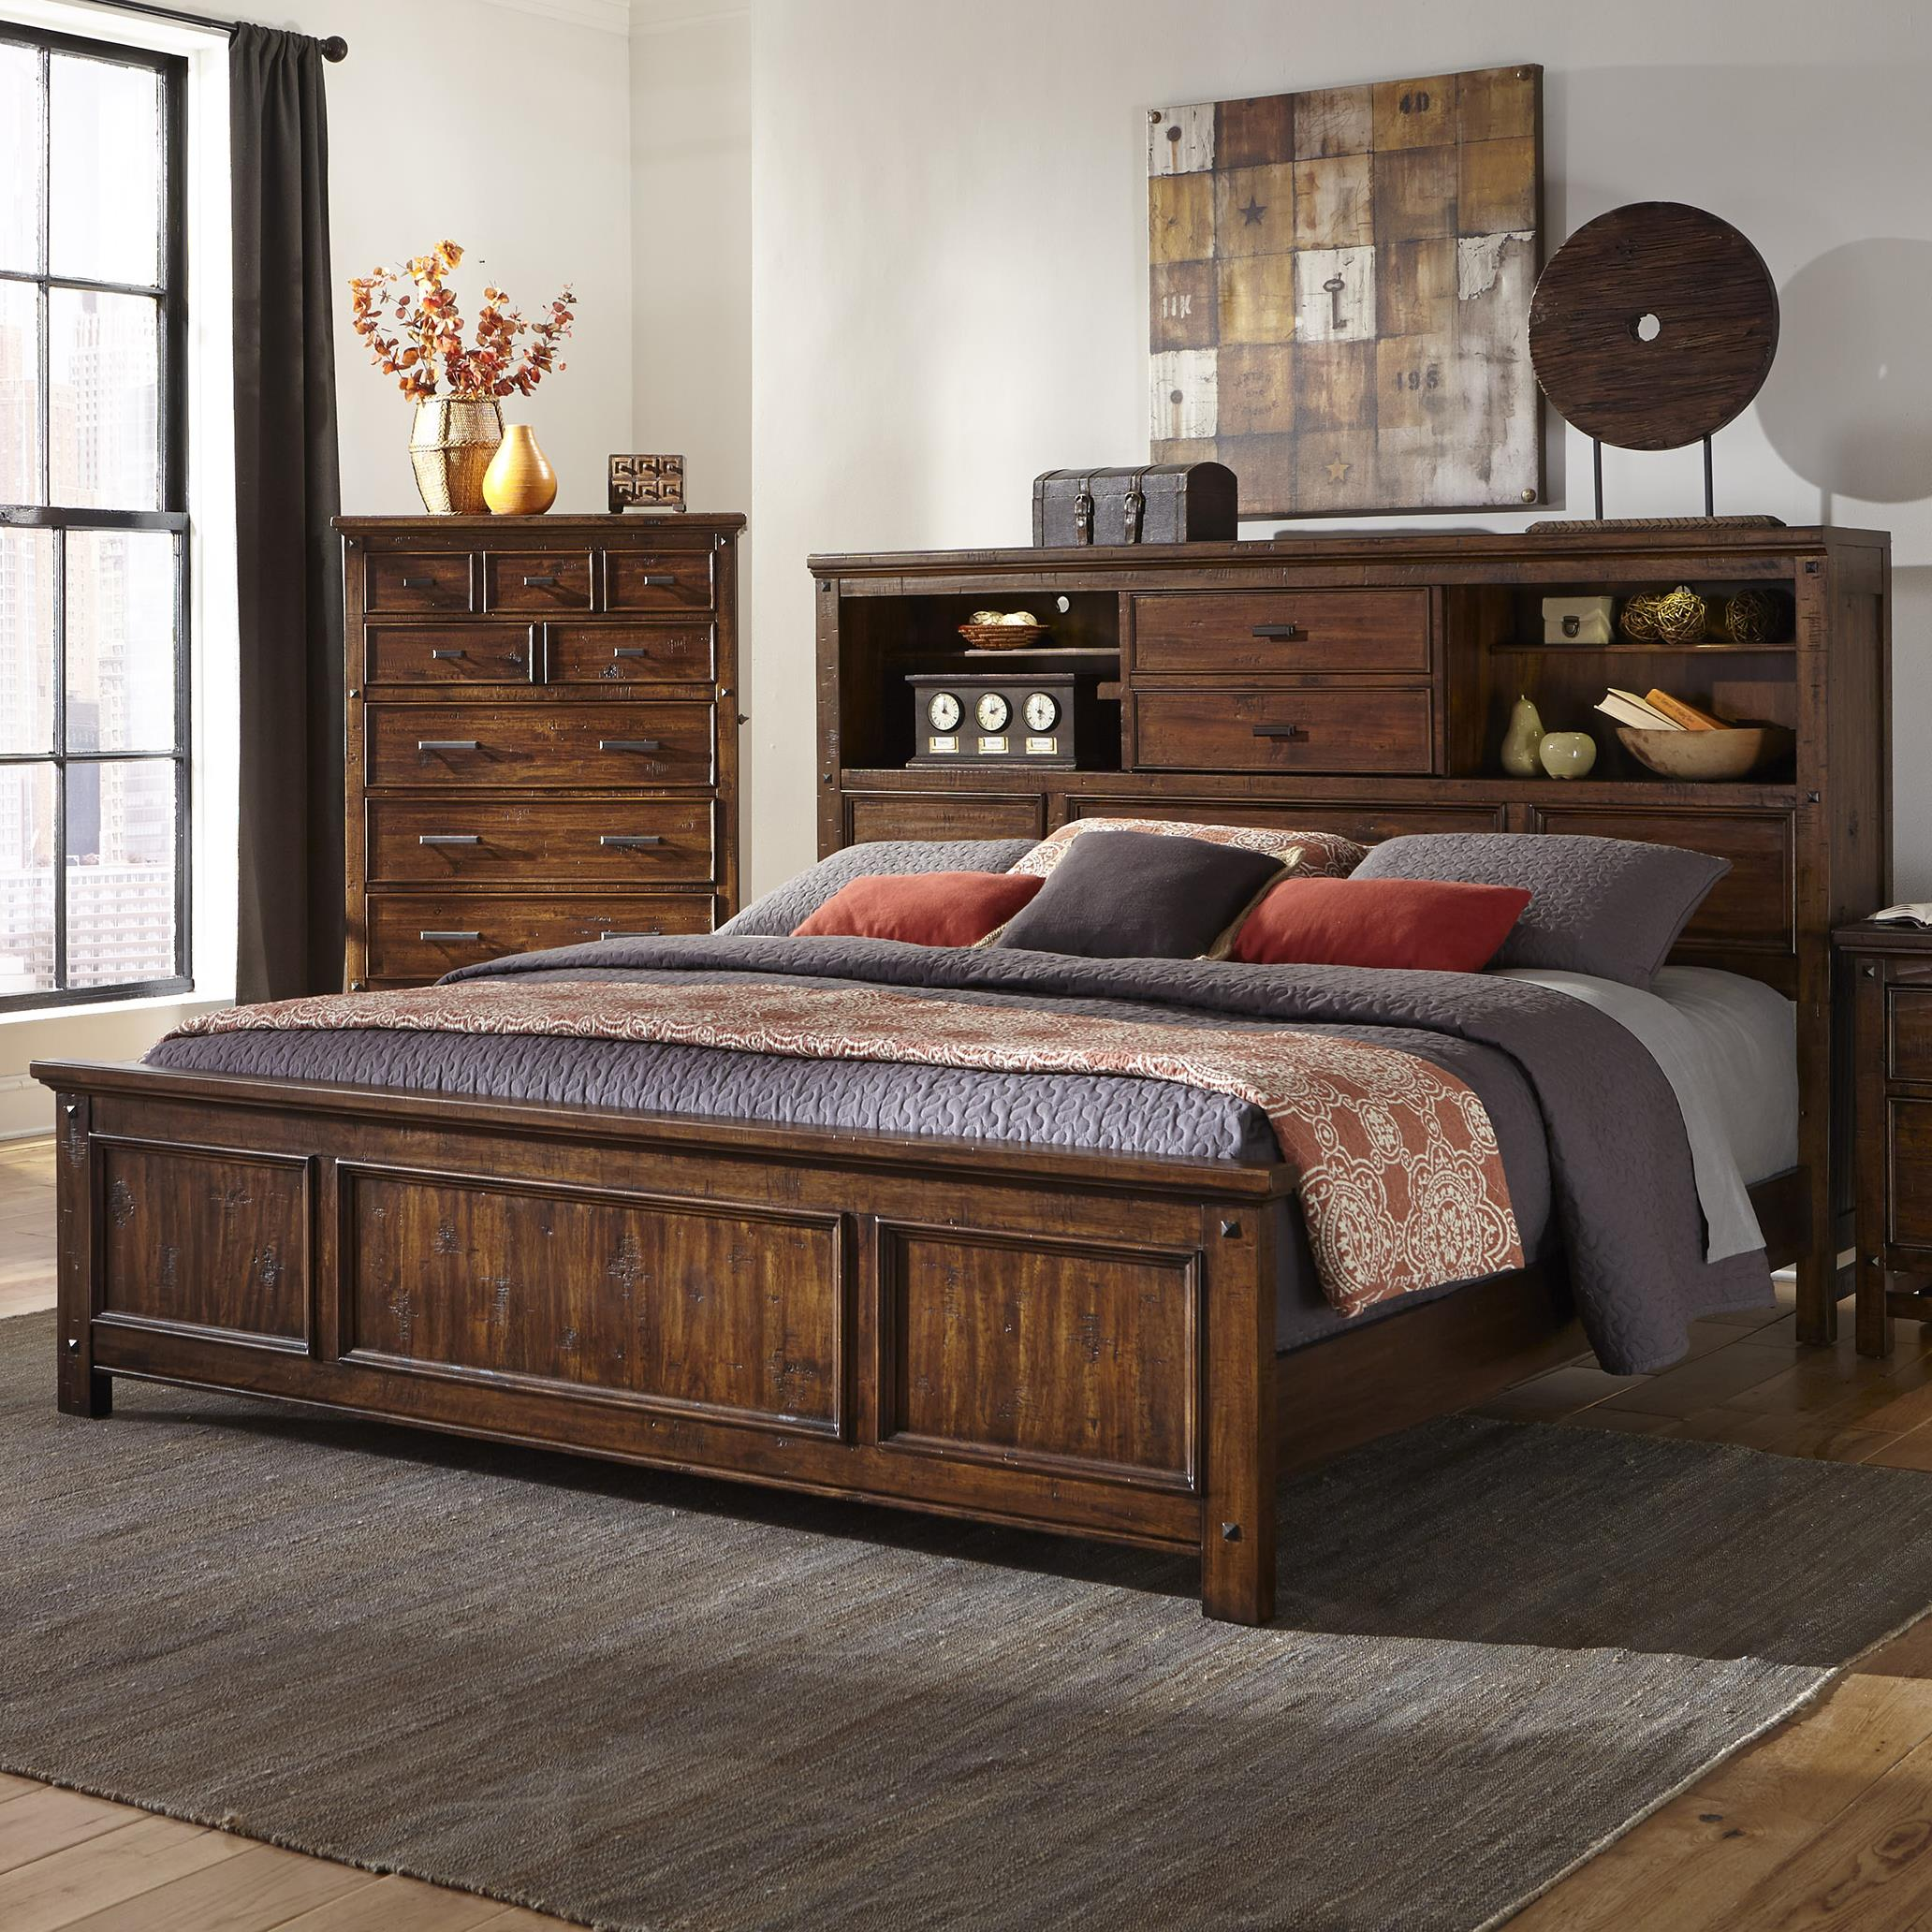 Bookcase Bed Wolf Creek Queen Bookcase Bed By Intercon At Wayside Furniture